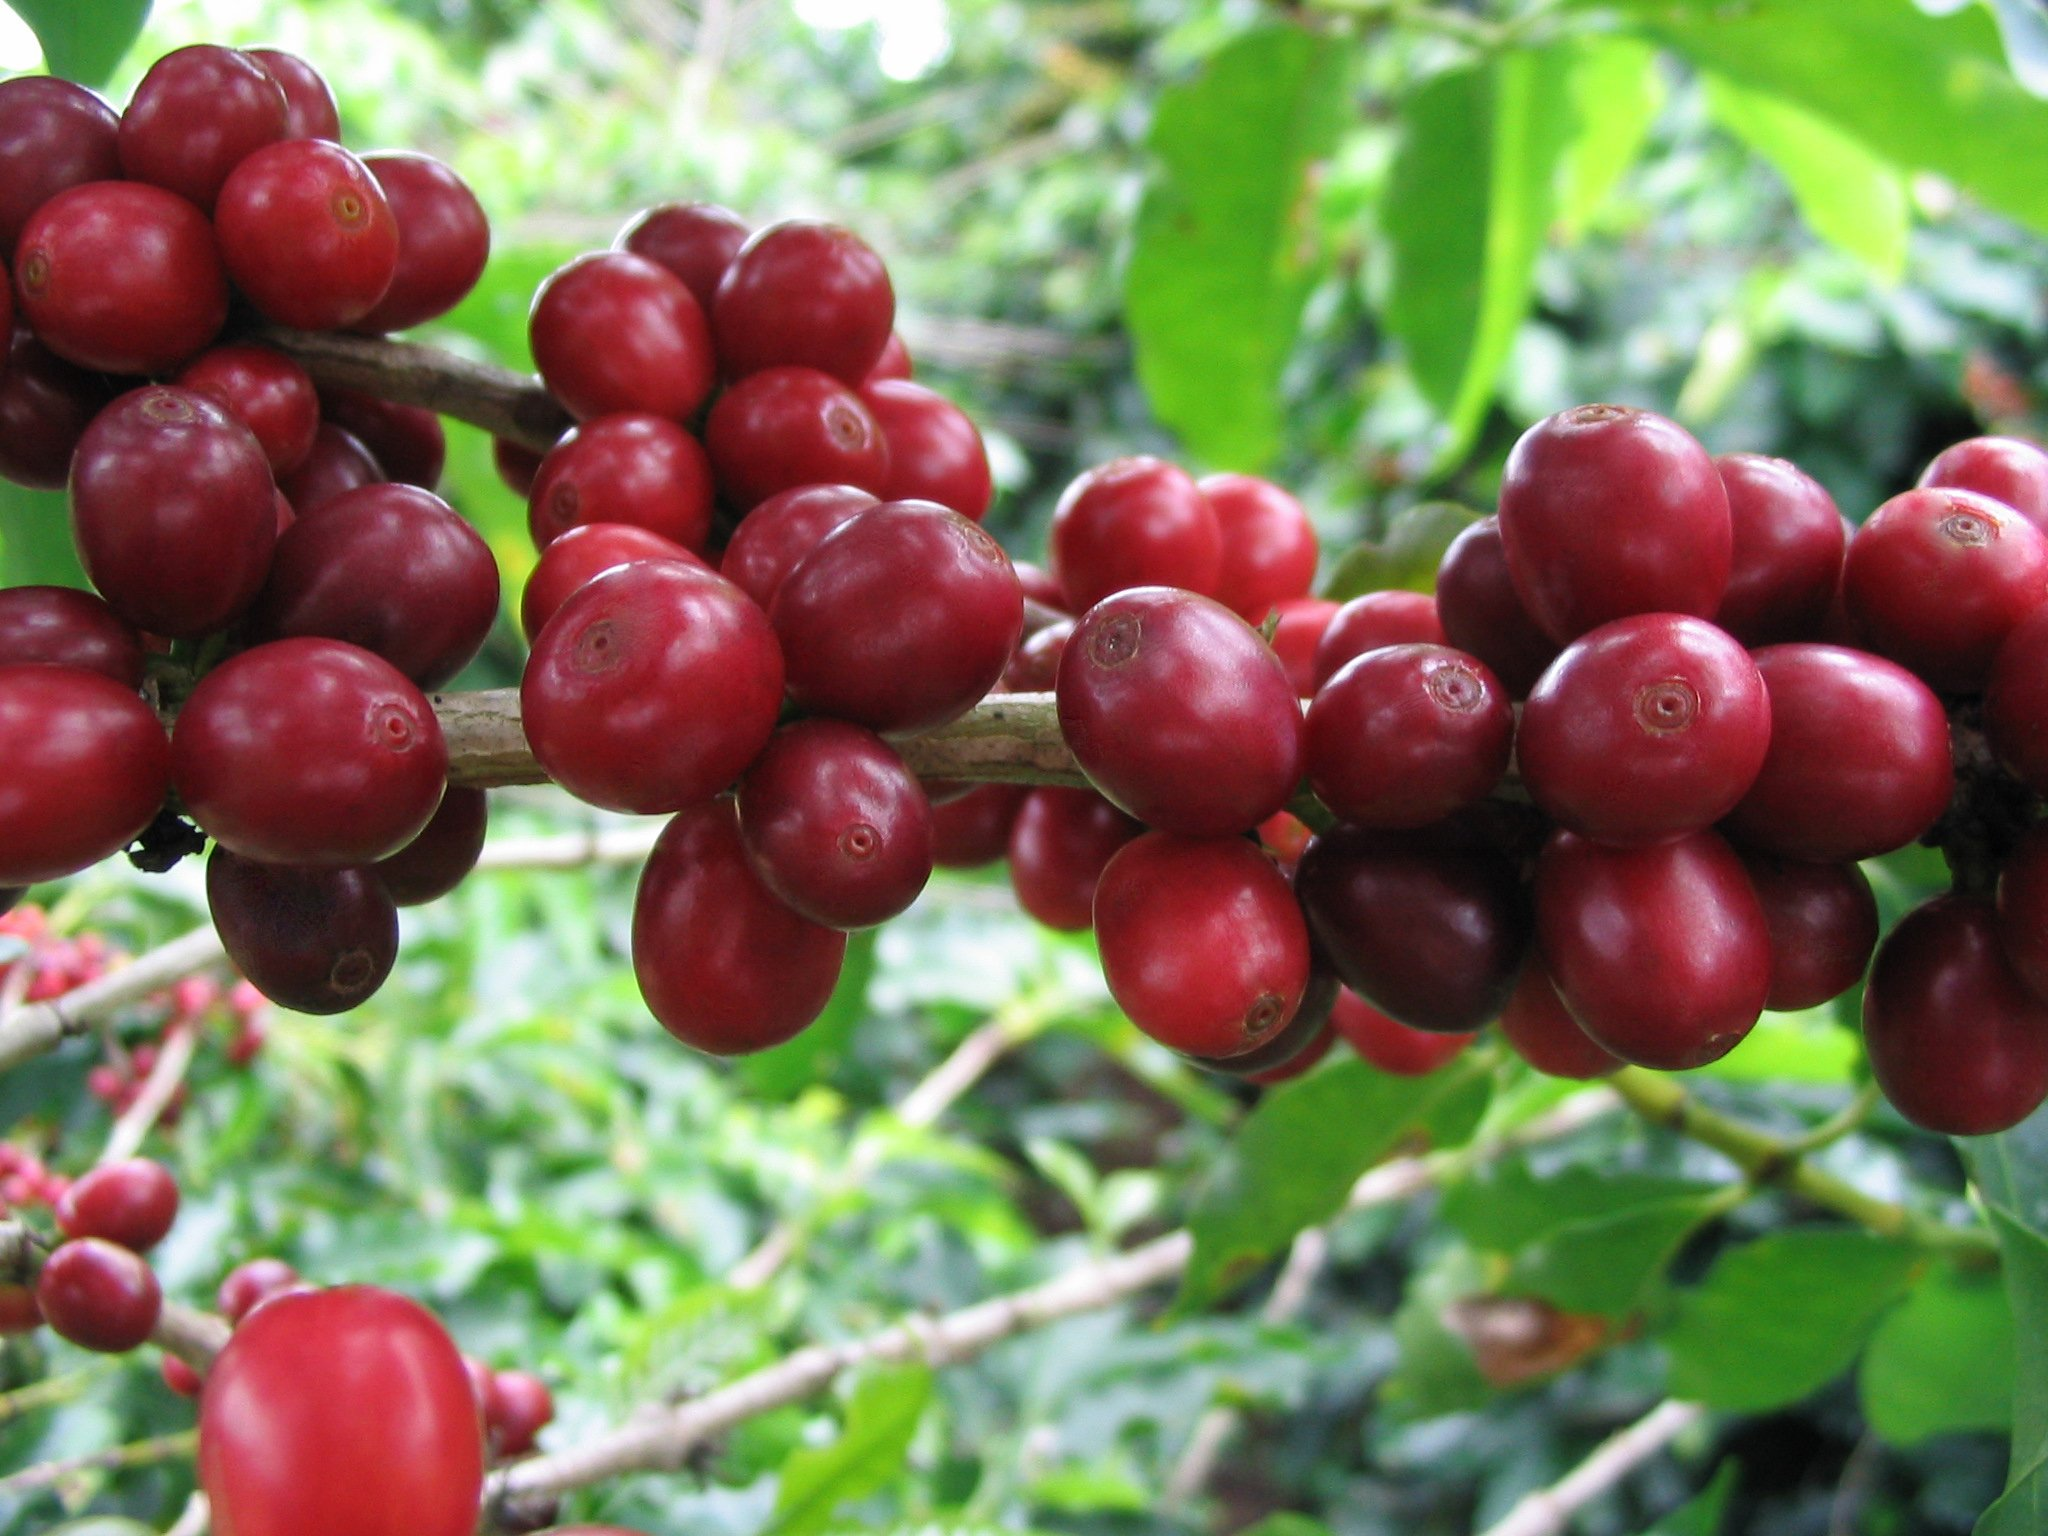 Fine International Coffees, up to 50 Pounds, Unroasted, Green Beans (Brazil Cerrado Arabica Natural 17/18 Coffee Beans, 30 pounds) by RhoadsRoast Coffees (Image #6)